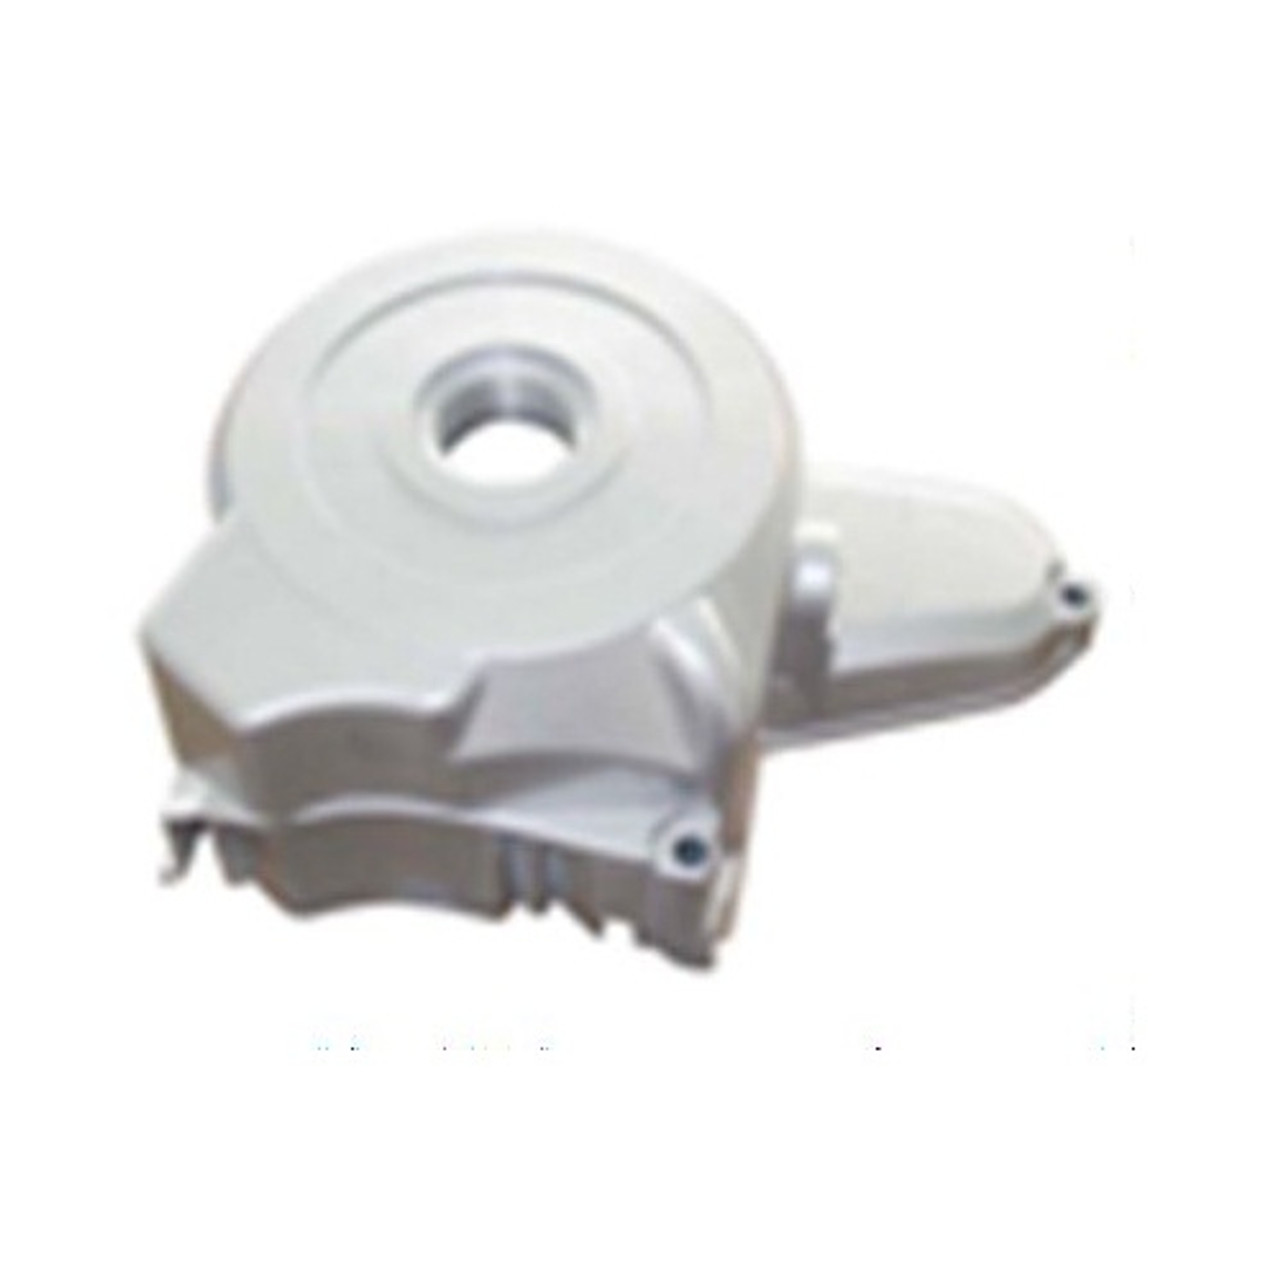 Left Engine Crankcase Cover; Metal Color for ATA 110 B/B1 104516